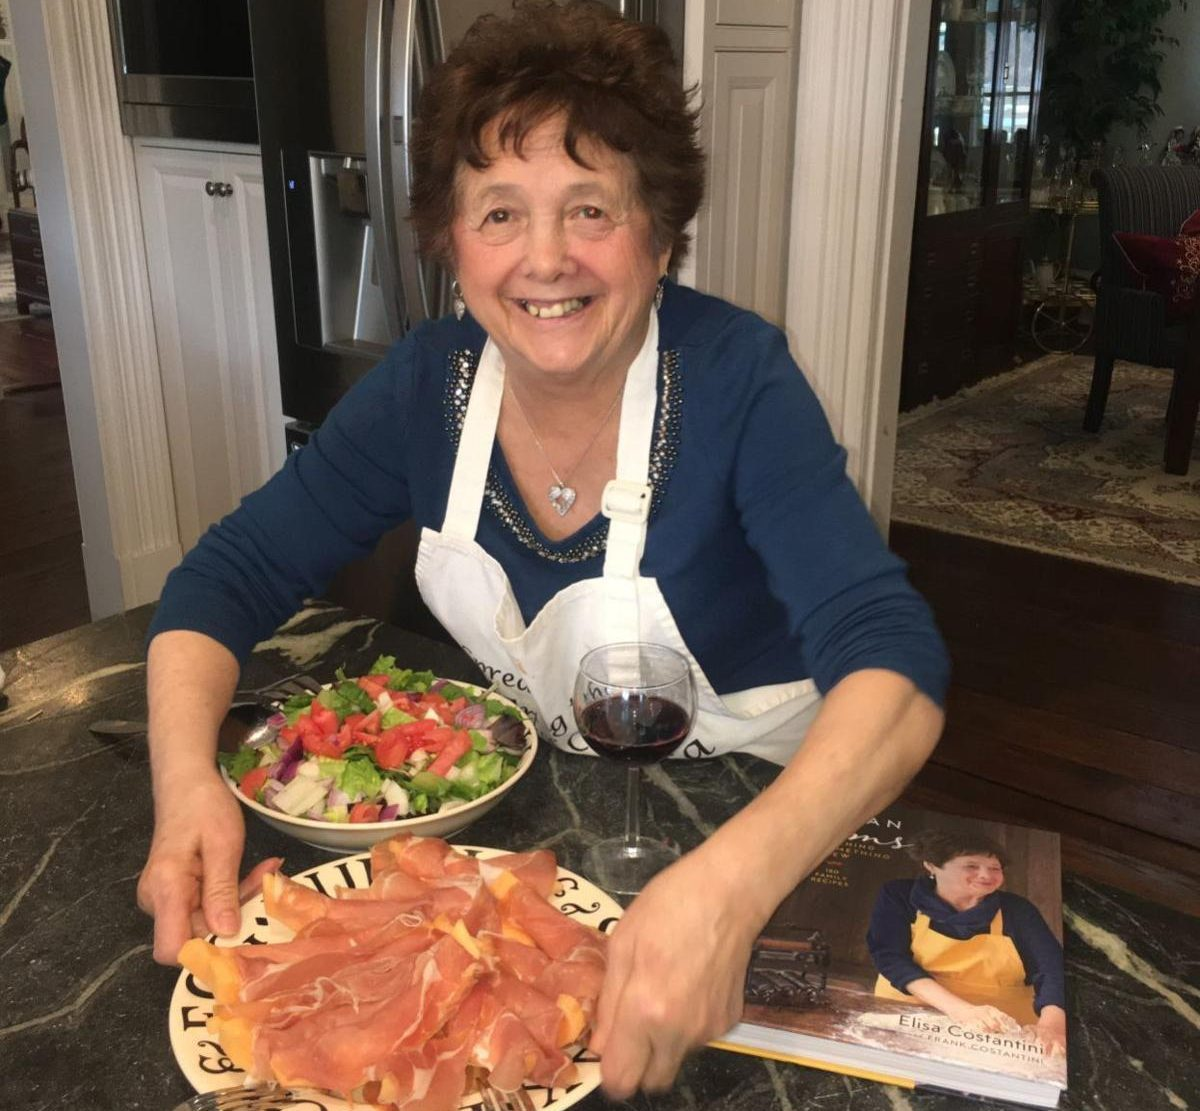 Humble Delco Chef Has Small Role in 'The Irishman' and Celebrity Status After Two Successful Cookbooks